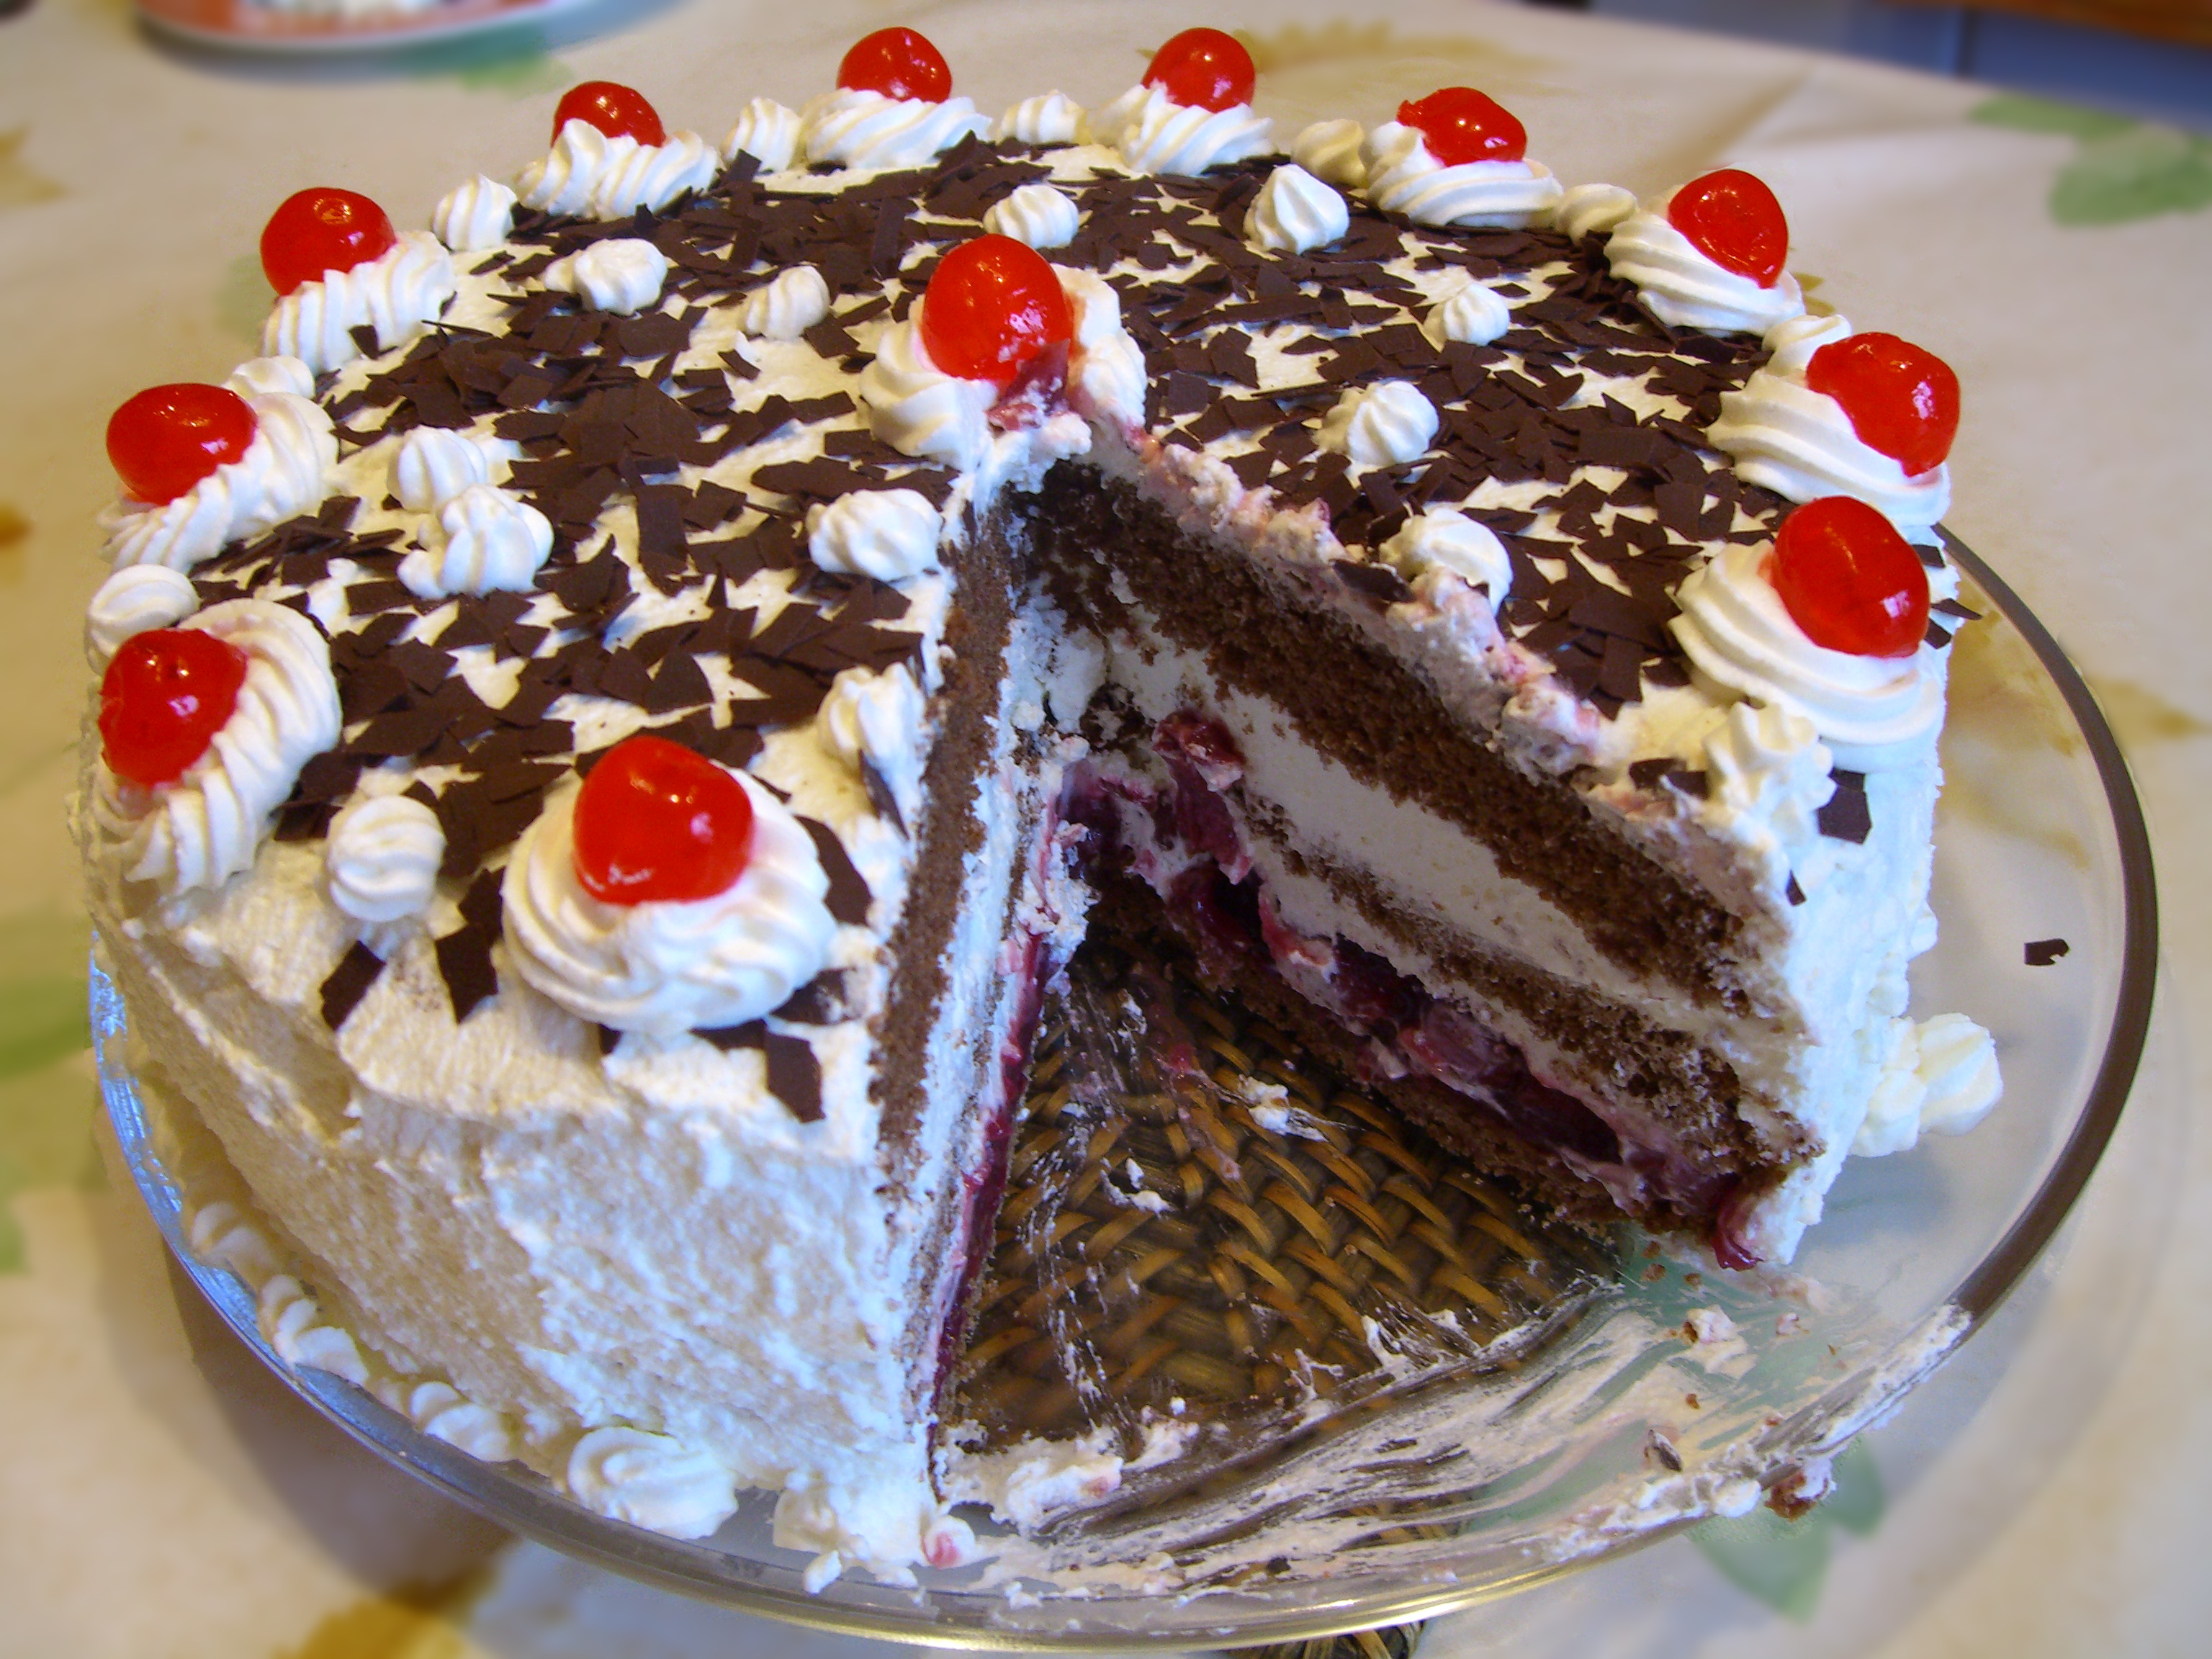 Description black forest gateau